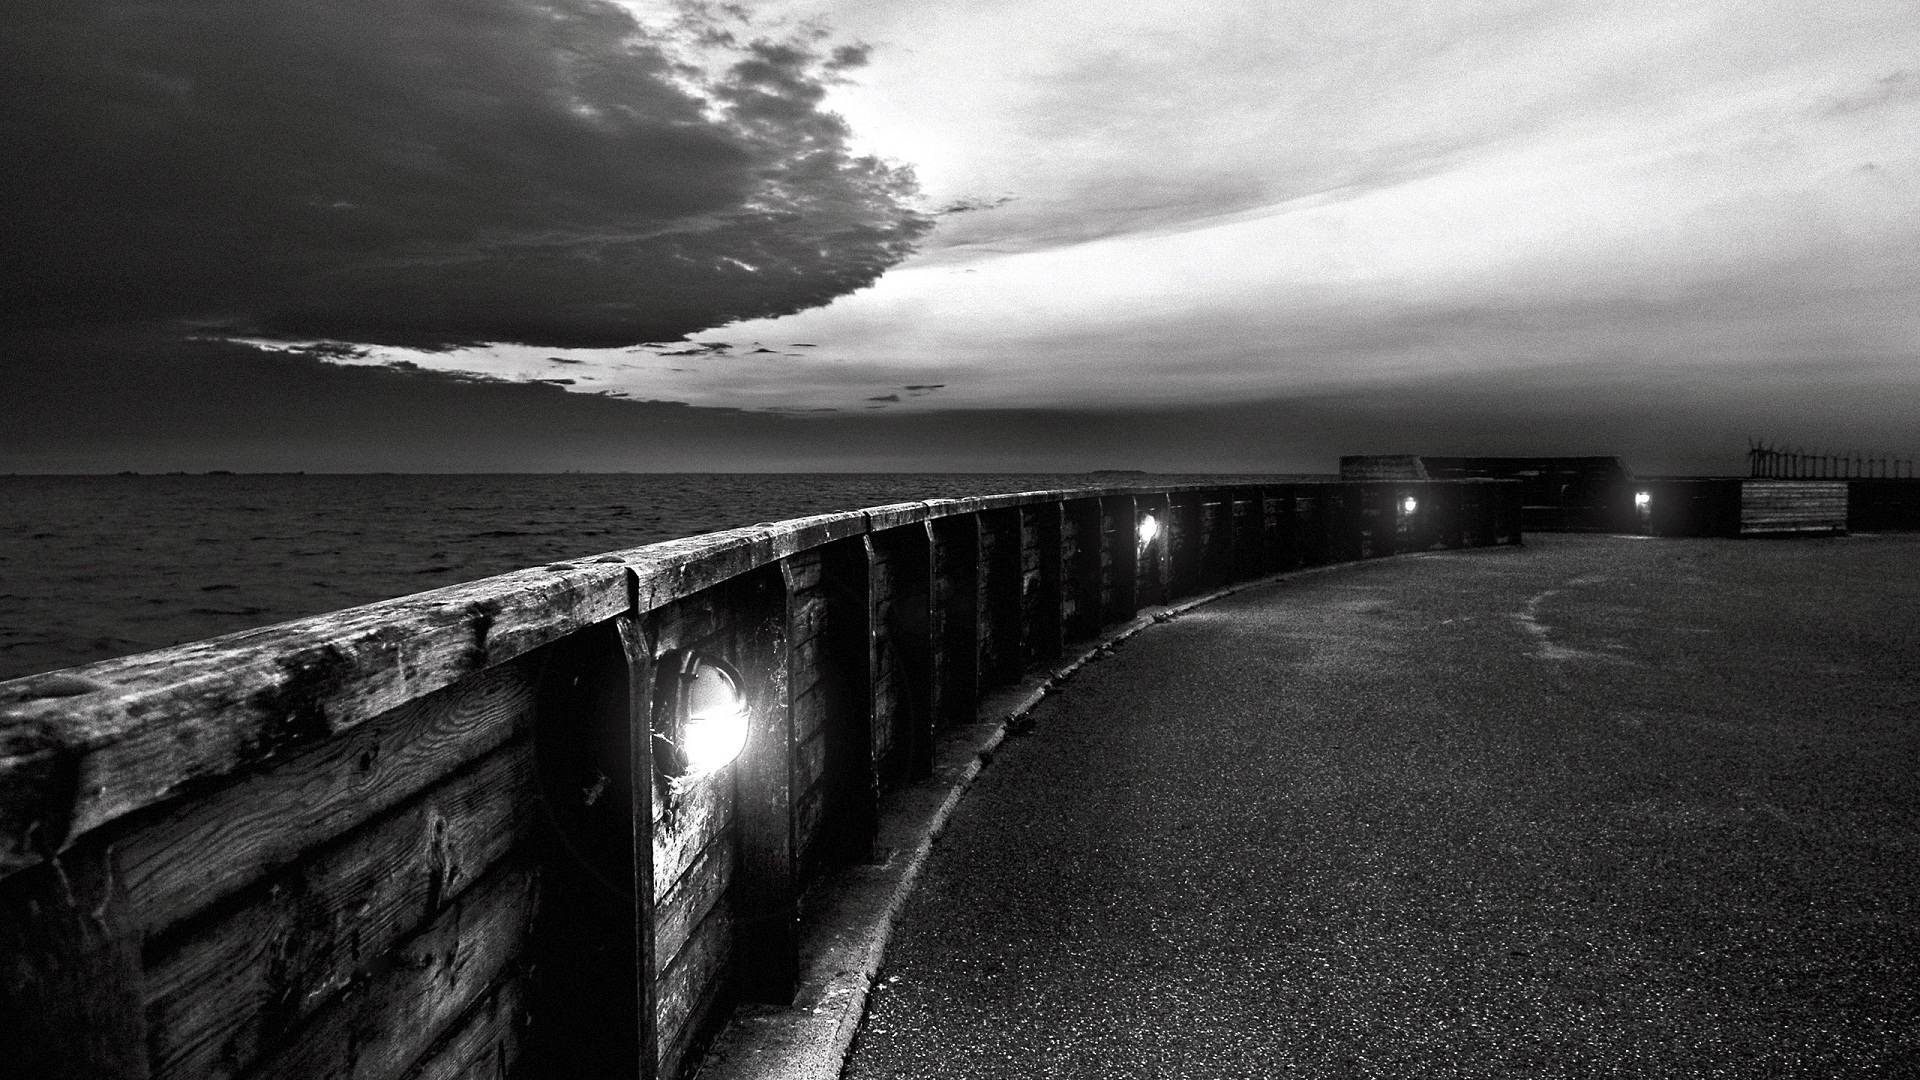 70 Hd Black And White Wallpapers For Free Download Resolution 1080p